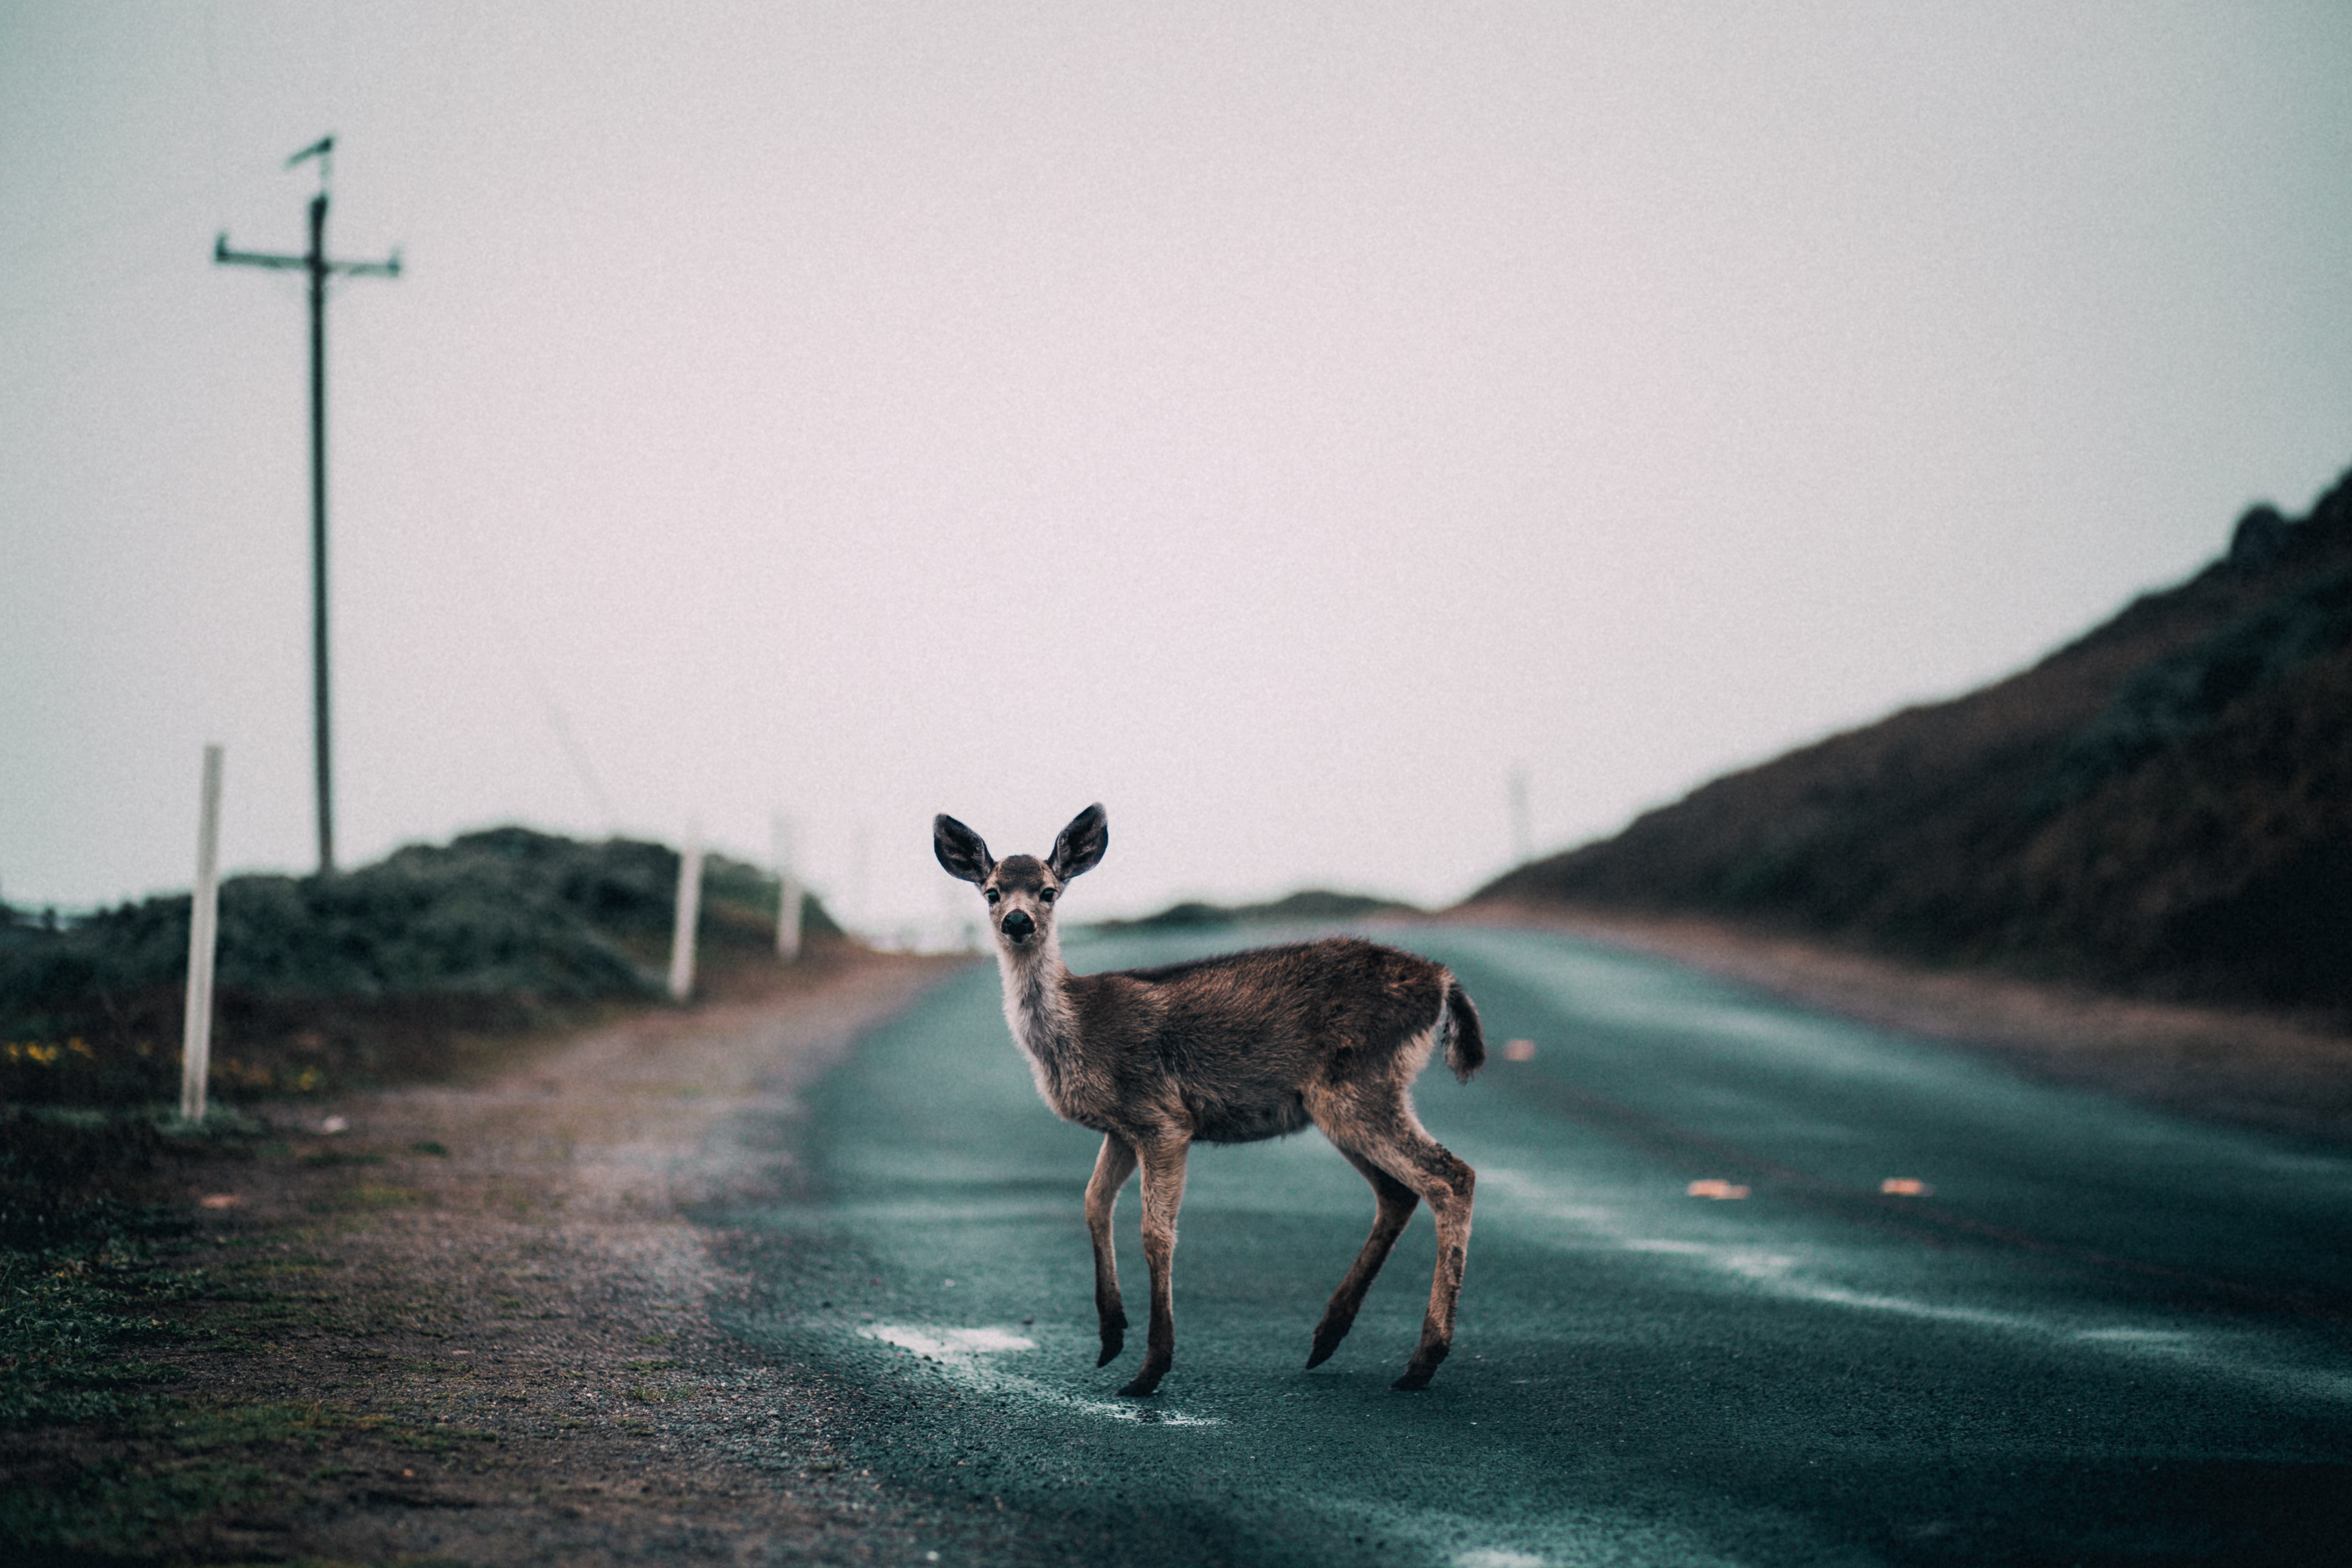 A deer caught looking up in the middle of the street crossing to the patch of grass beside a hill on an overcast day